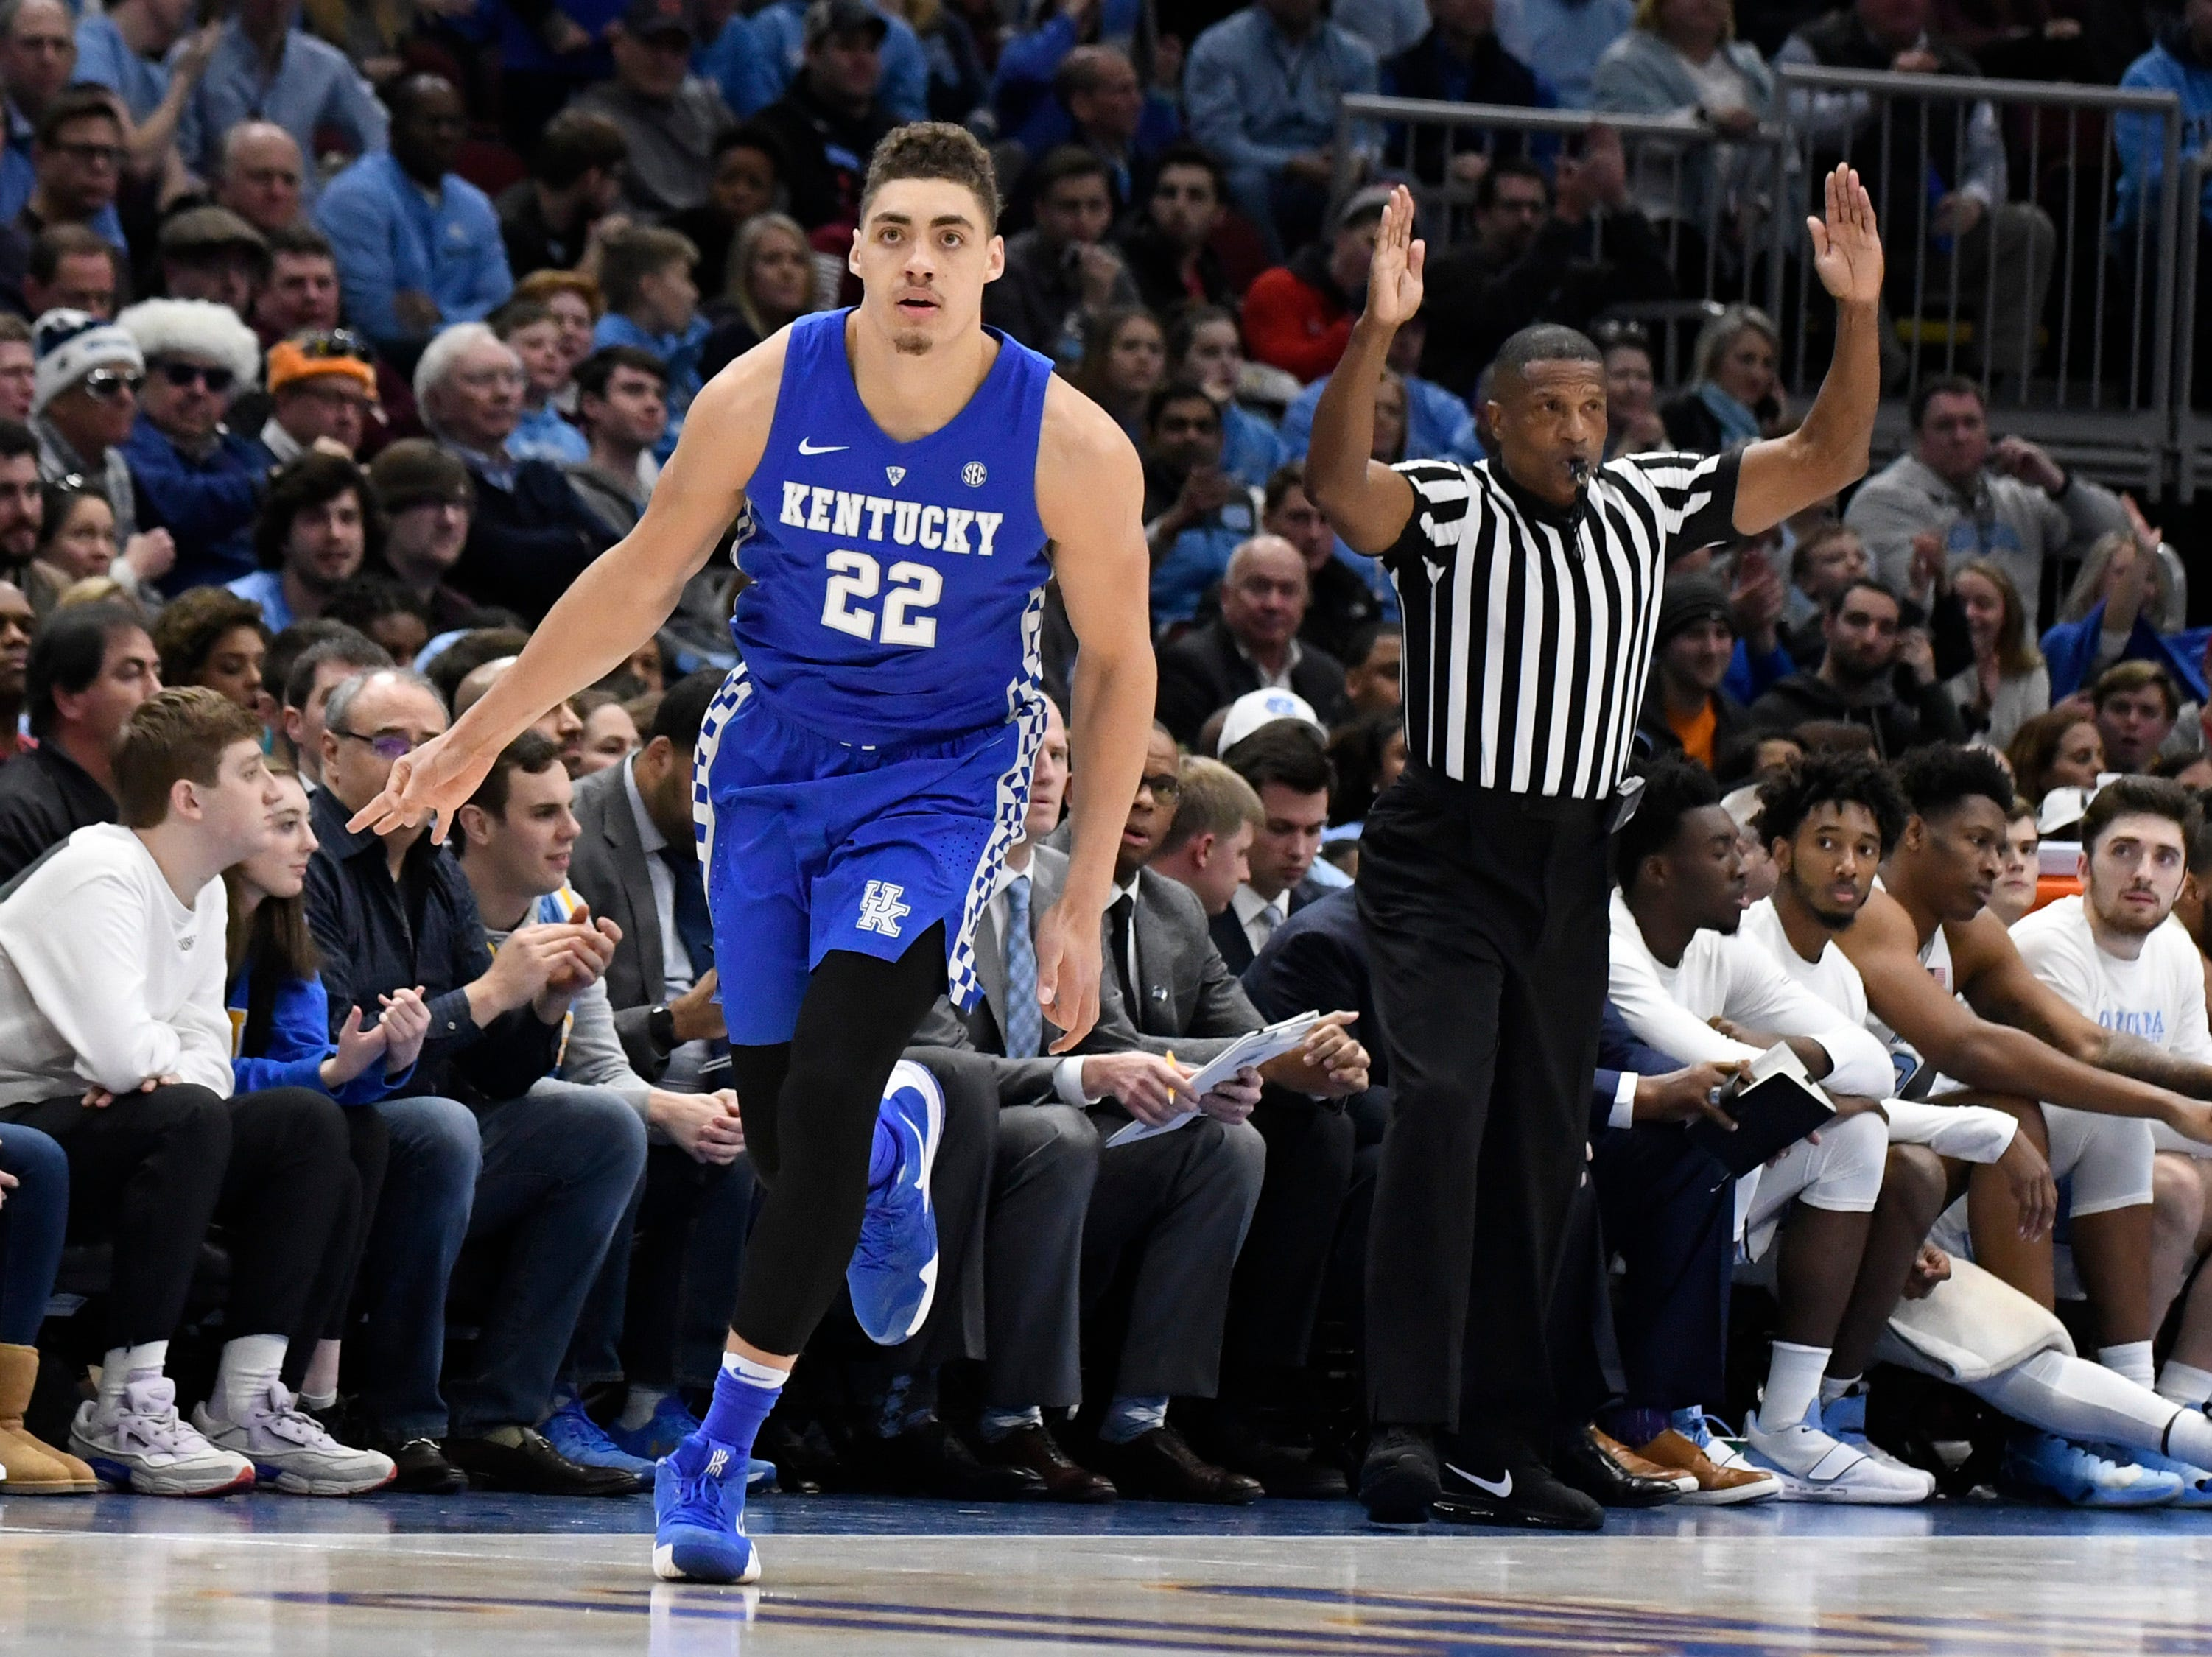 Dec 22, 2018; Chicago, IL, USA; Kentucky Wildcats forward Reid Travis (22) gestures after making a three-point basket against the North Carolina Tar Heels during the first half at United Center.